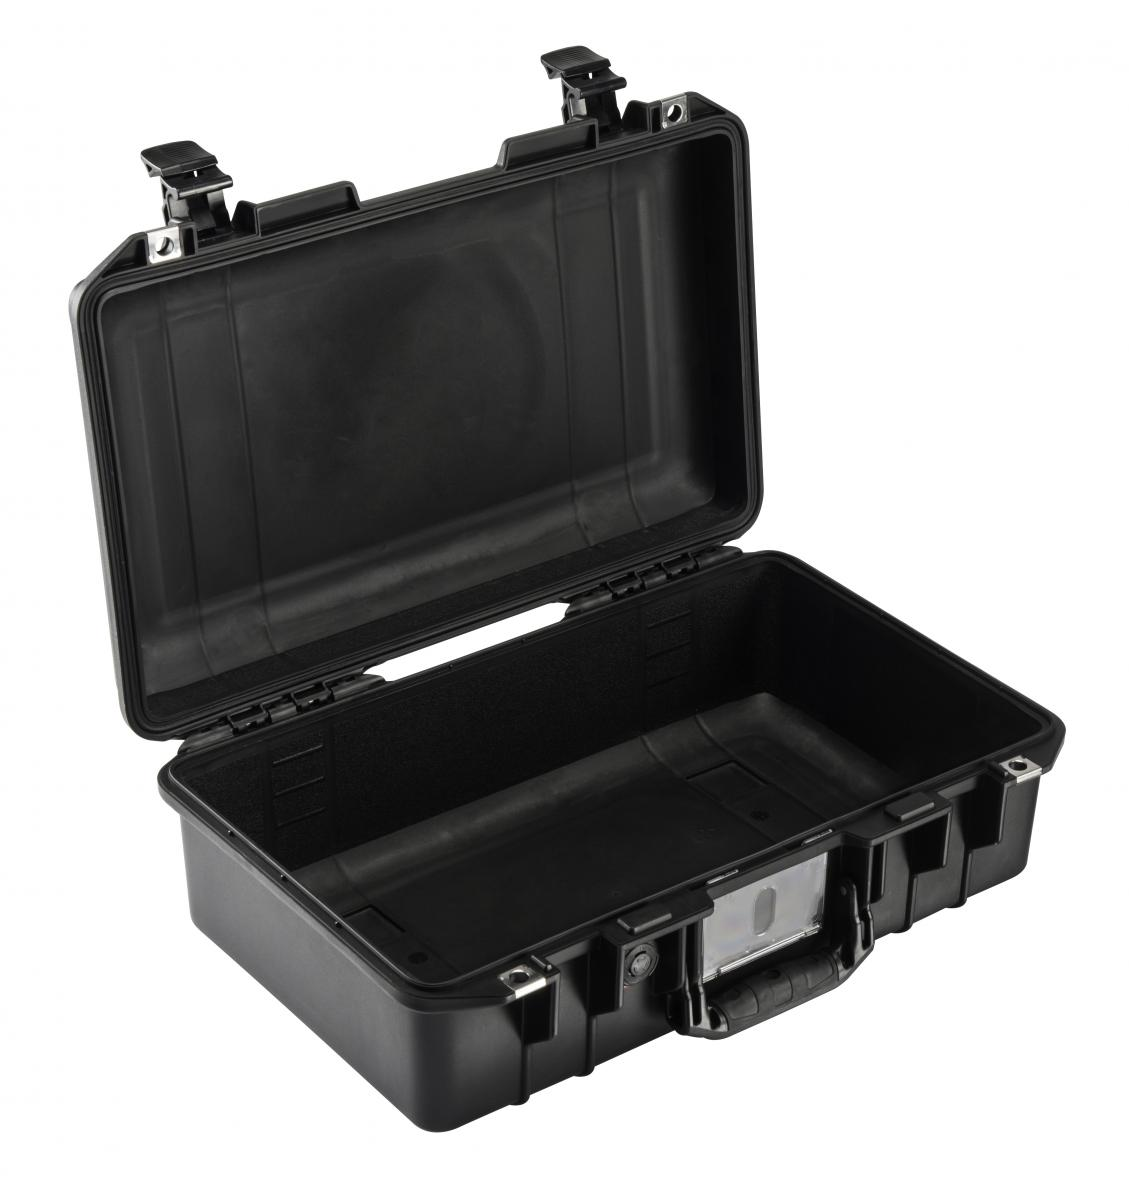 Pelican Air 1485 Lightweight Watertight Case Pc 1485air Cases By Source